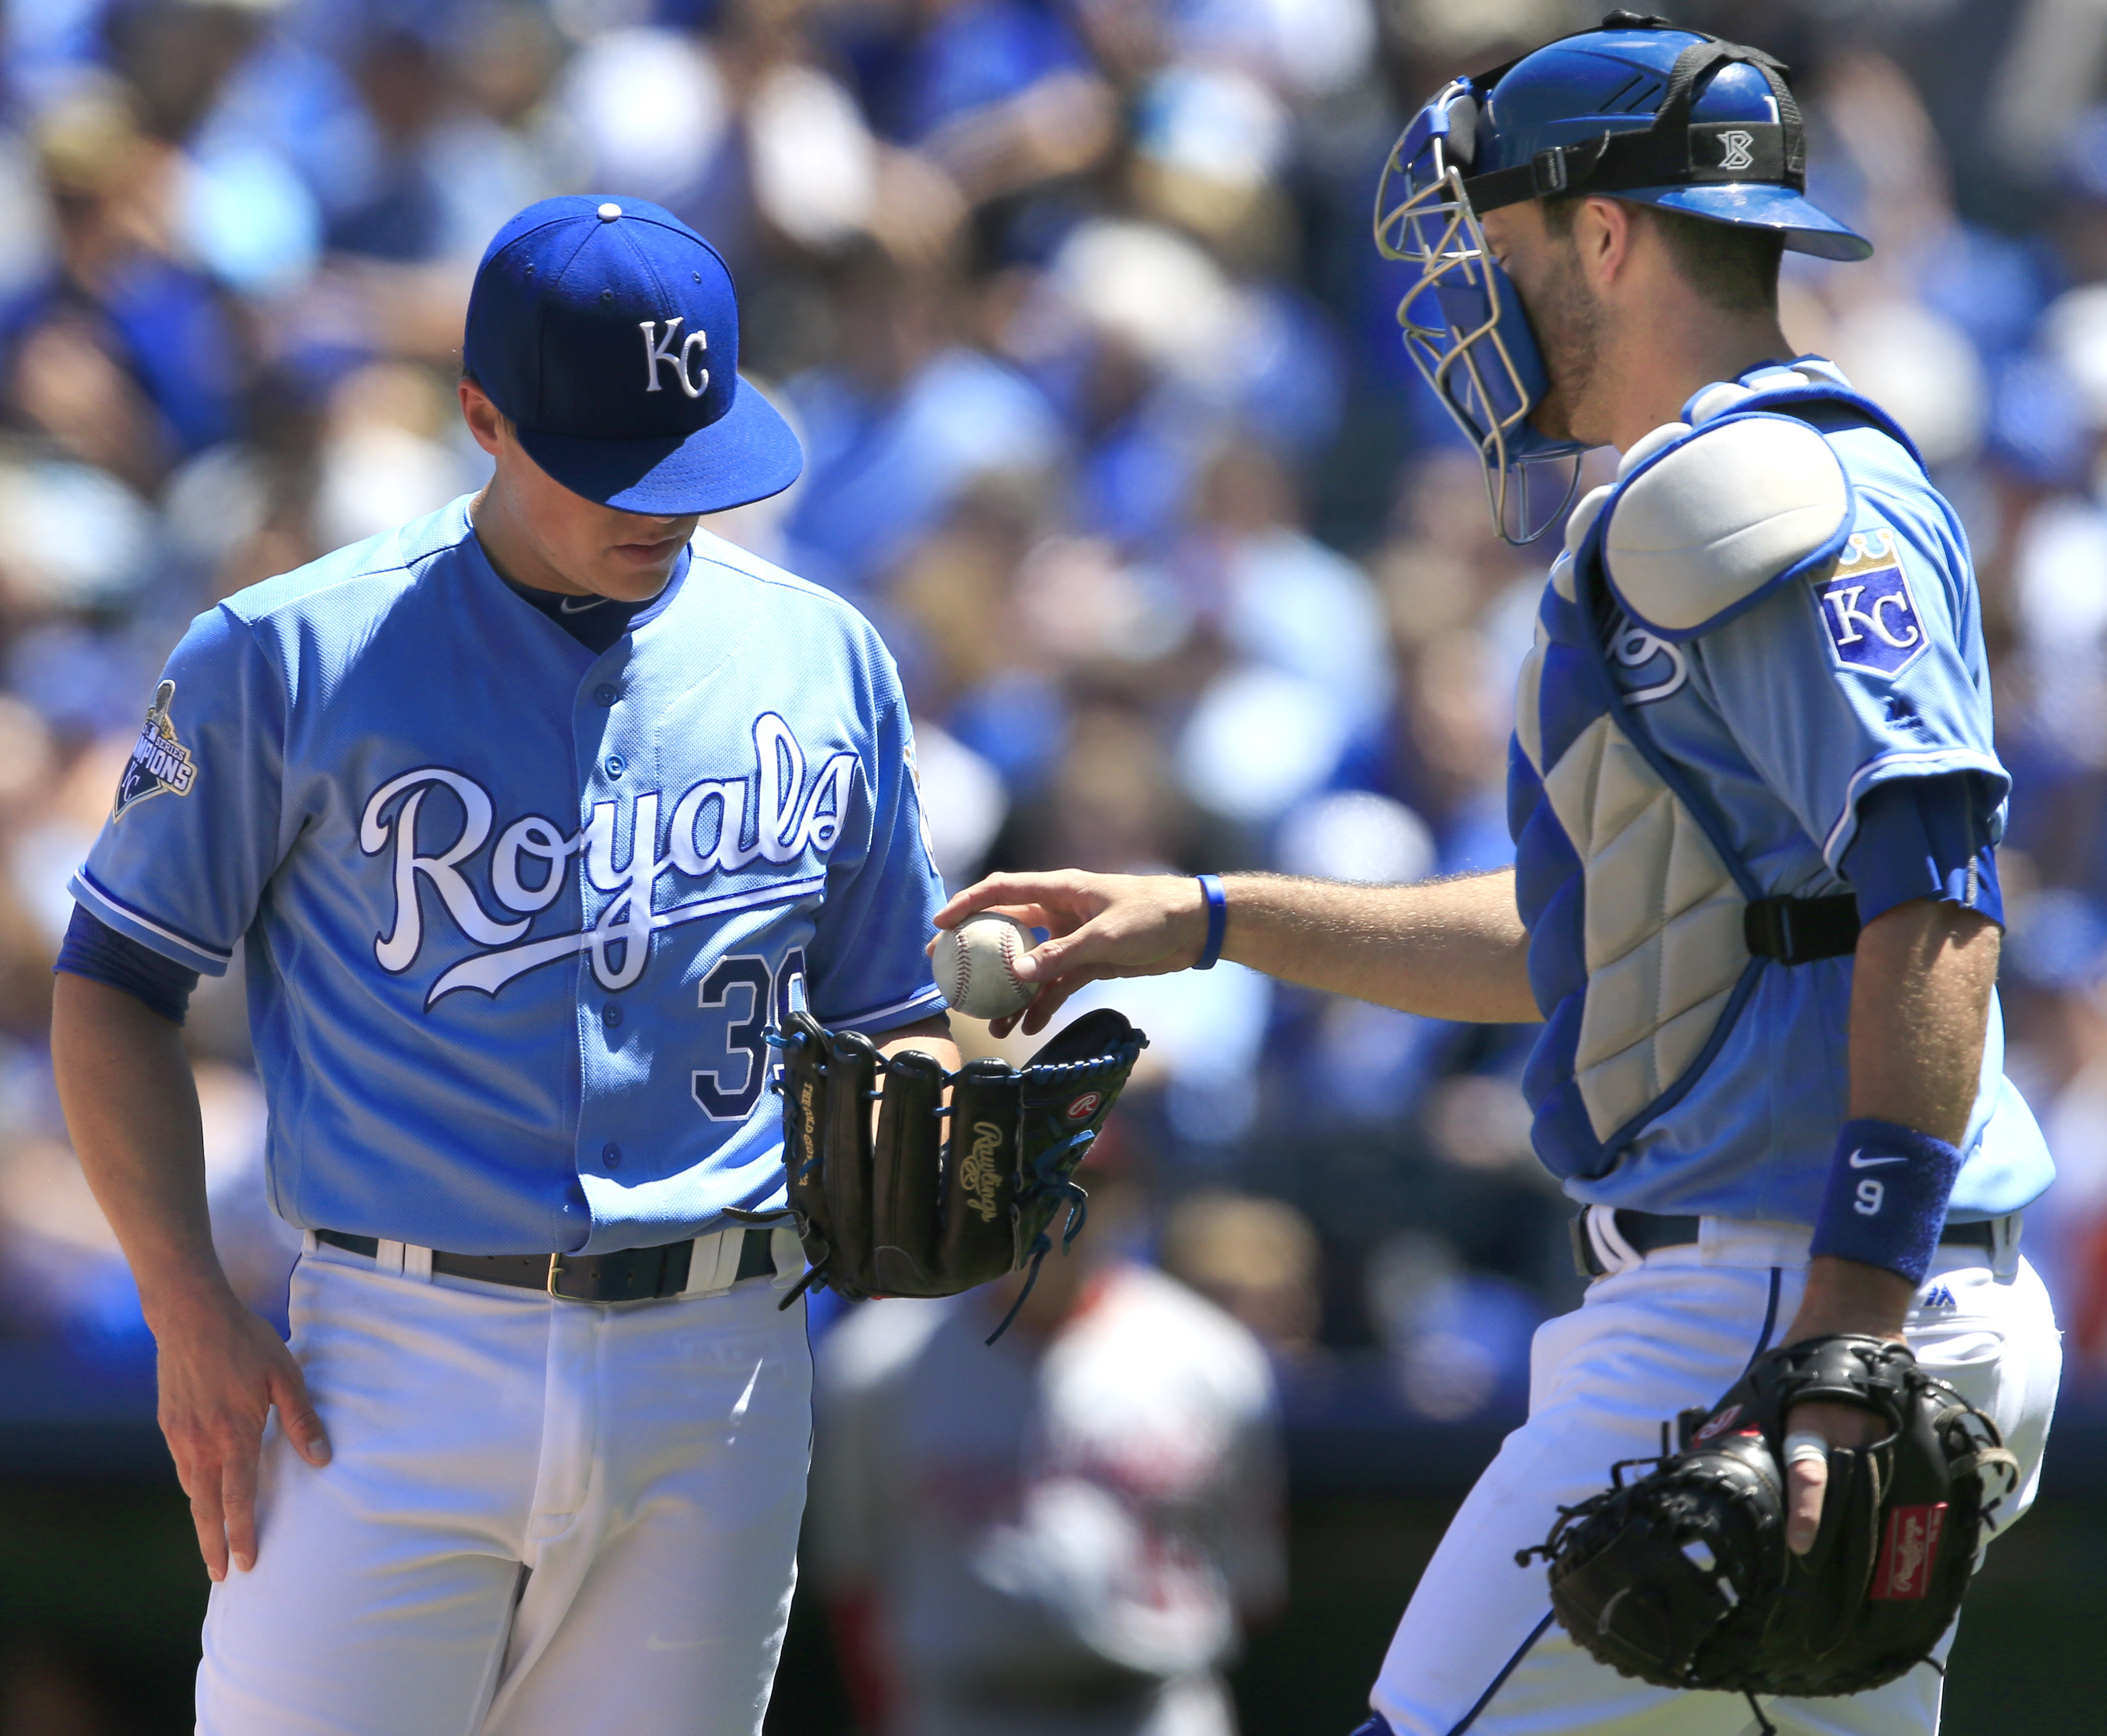 Kansas City Royals catcher Drew Butera, right, hands the ball to starting pitcher Kris Medlen (39) during the first inning of a baseball game against the Washington Nationals at Kauffman Stadium in Kansas City, Mo., Wednesday, May 4, 2016. The Royals comm